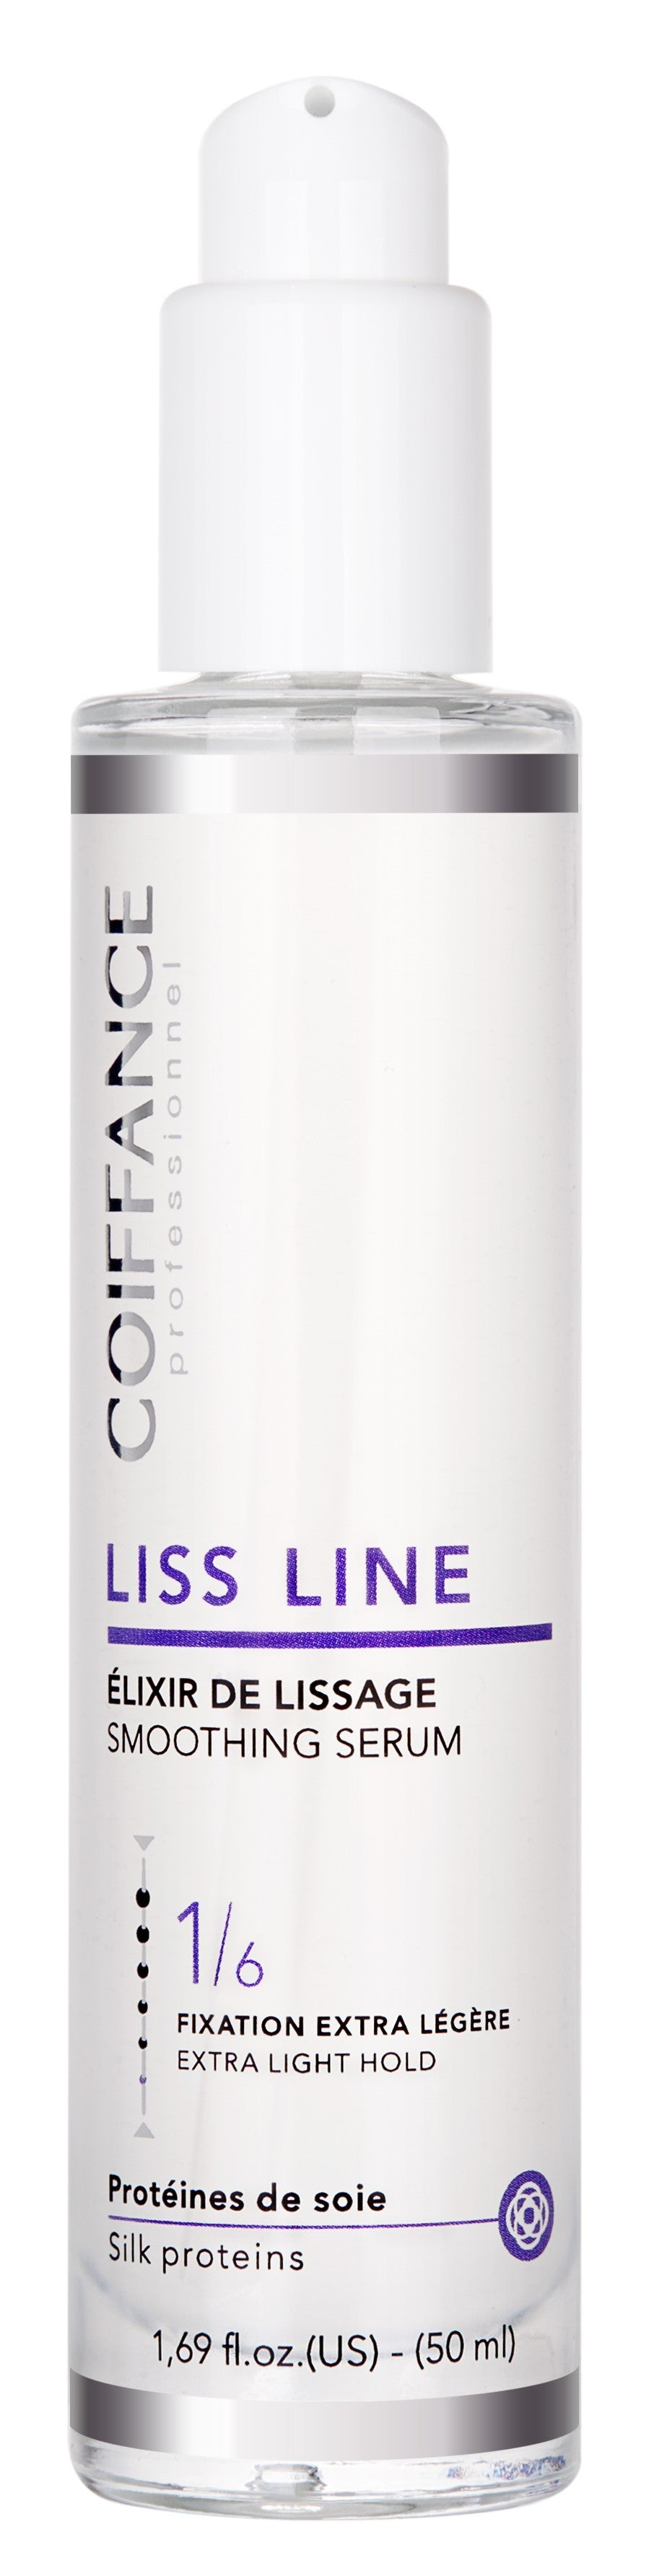 liss line - smoothing serum